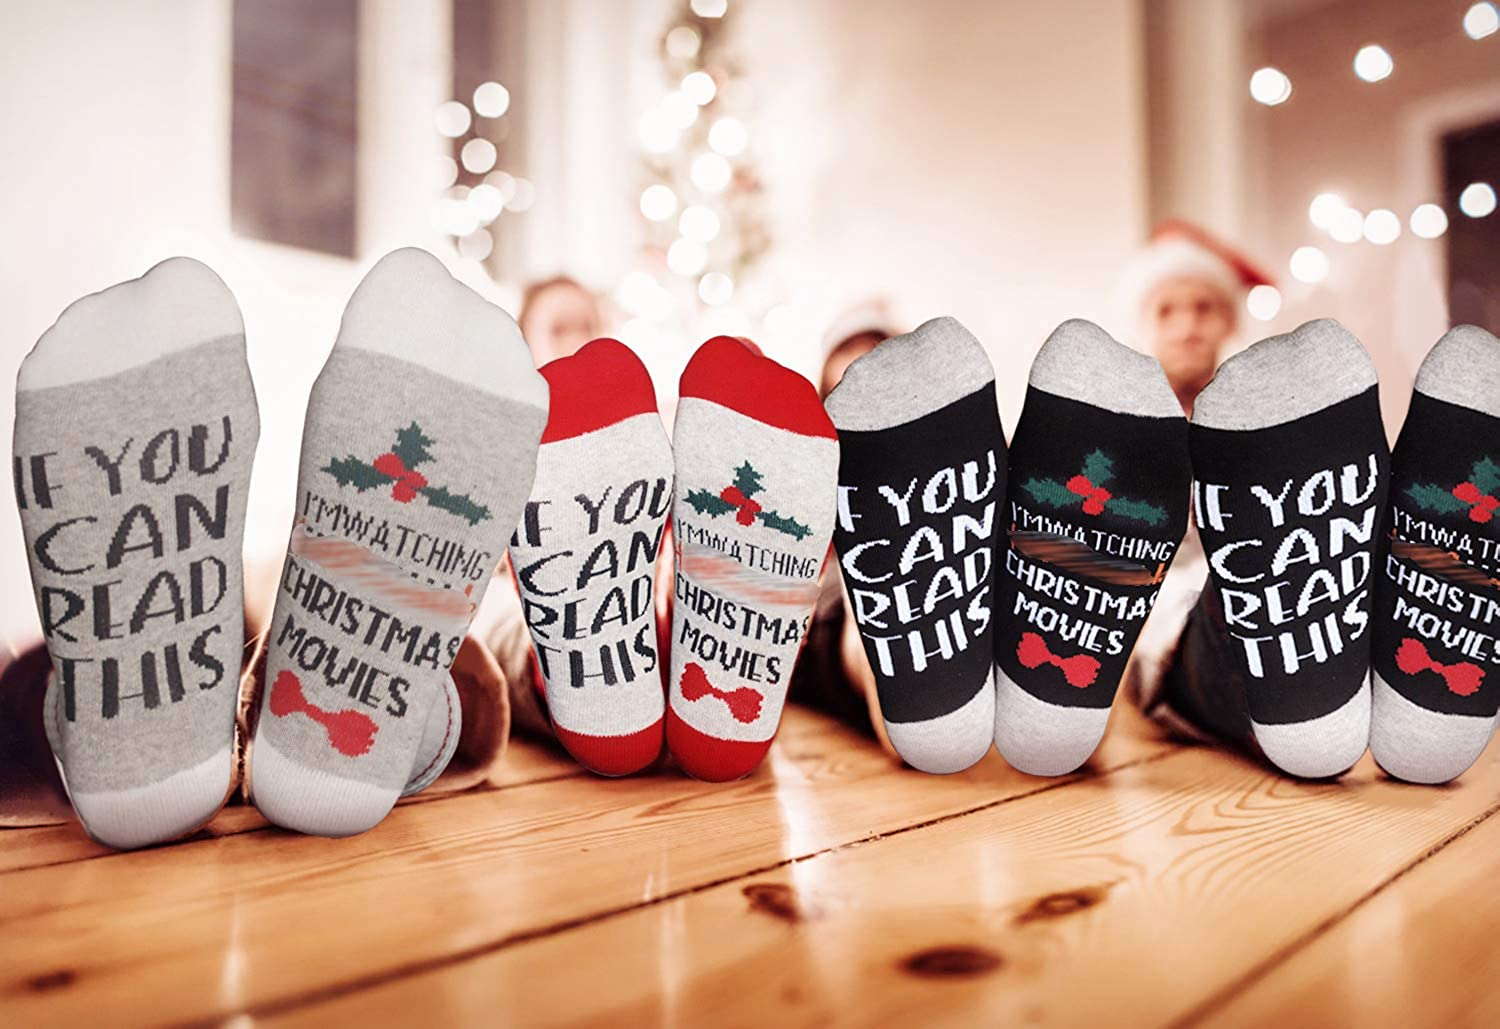 Fascigirl 4Pairs If You Can Read This Im Watching Christmas Movies Elastic Letters Printed Funny Crew Socks Christmas Casual Socks Gift for Women Men Novelty Cotton Socks